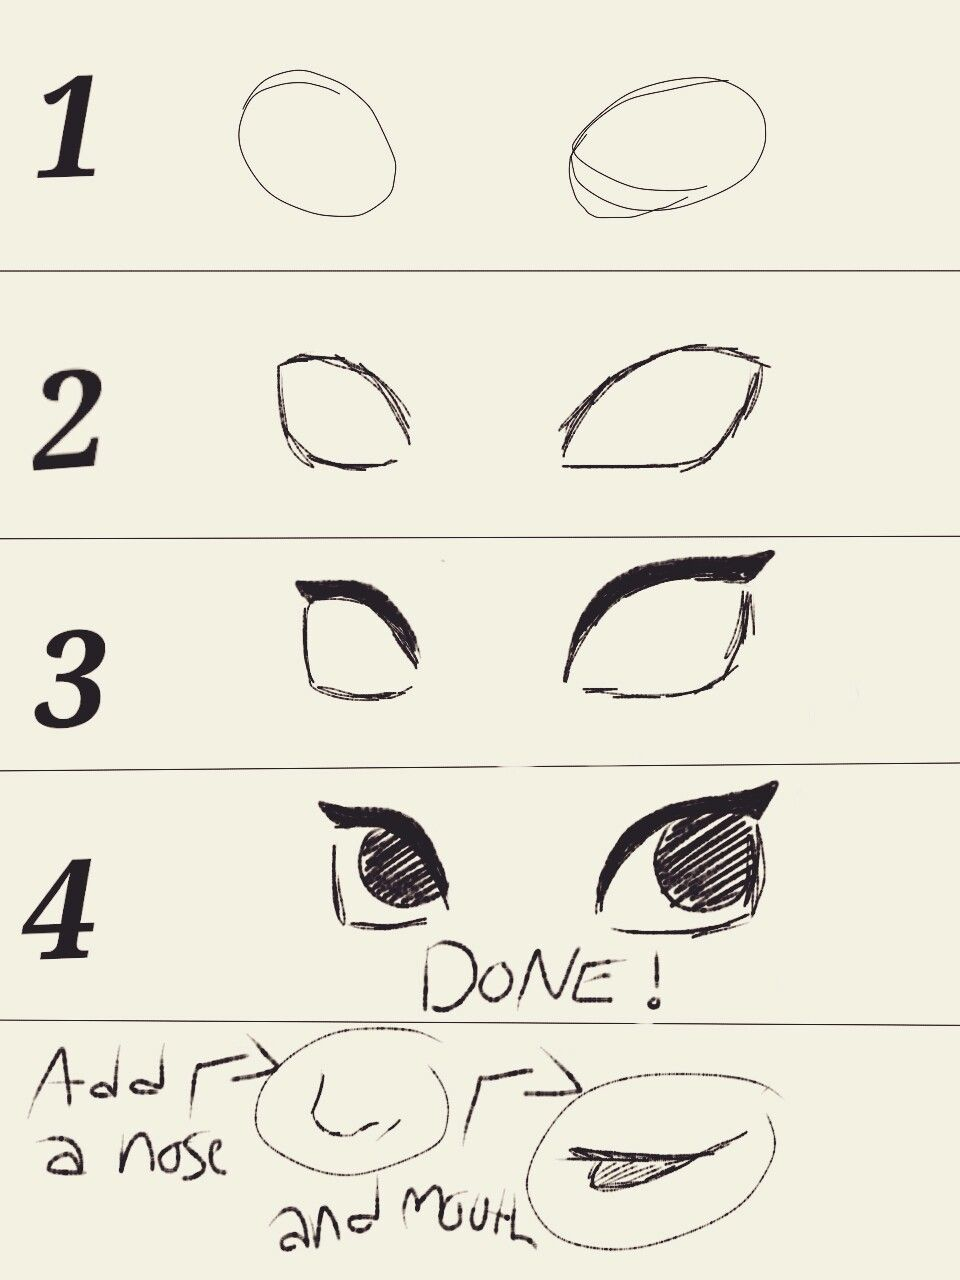 Someone Asked For A Tutorial On How I Draw My Art Well Here Are My Simplistic Disney Style Eyes By Disney Art Style Disney Style Drawing Cartoon Art Styles